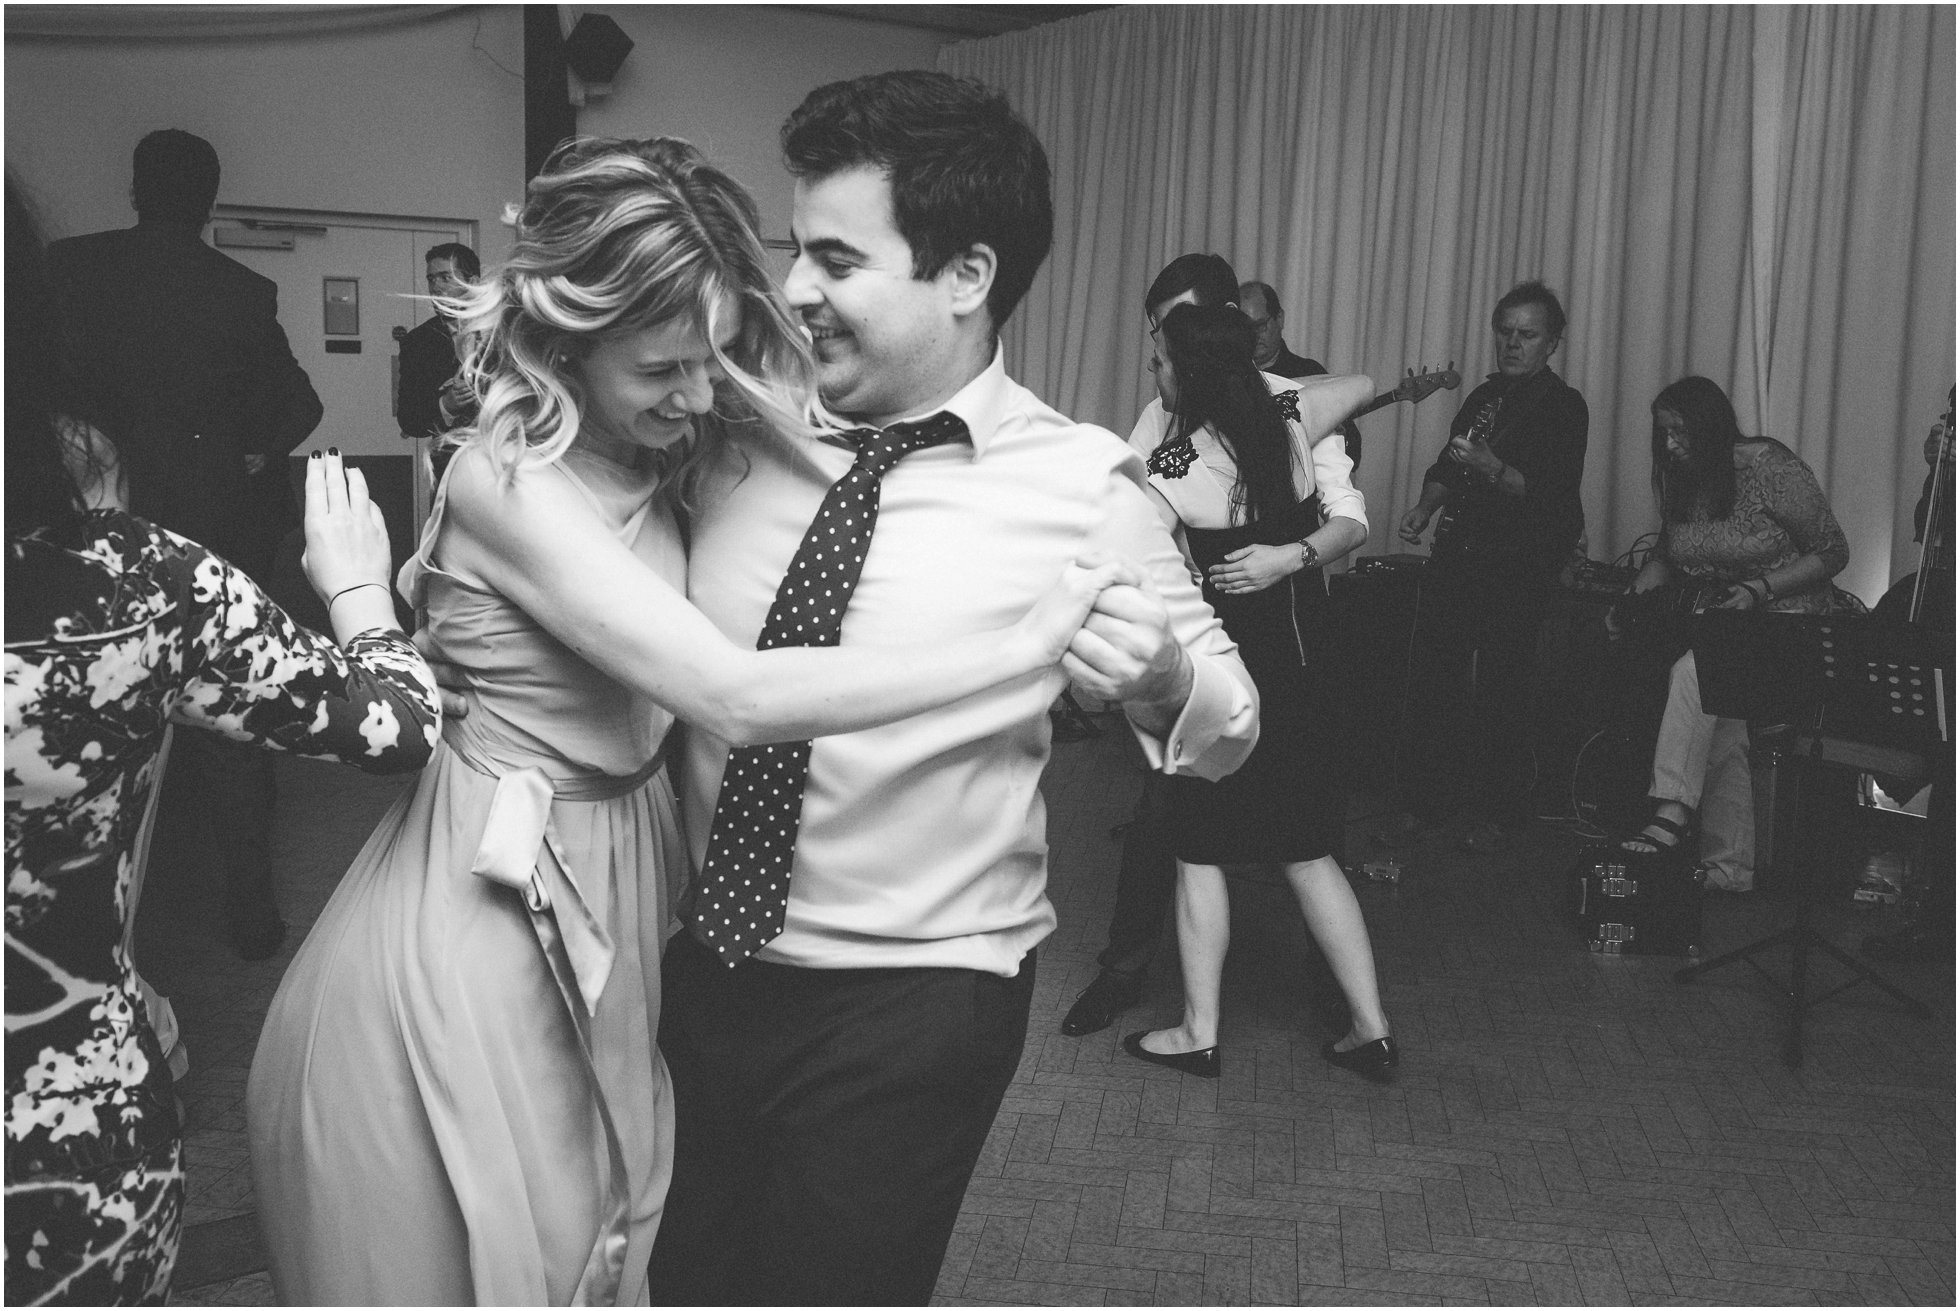 Reportage dancing fun at an awesome Brooksby Hall wedding